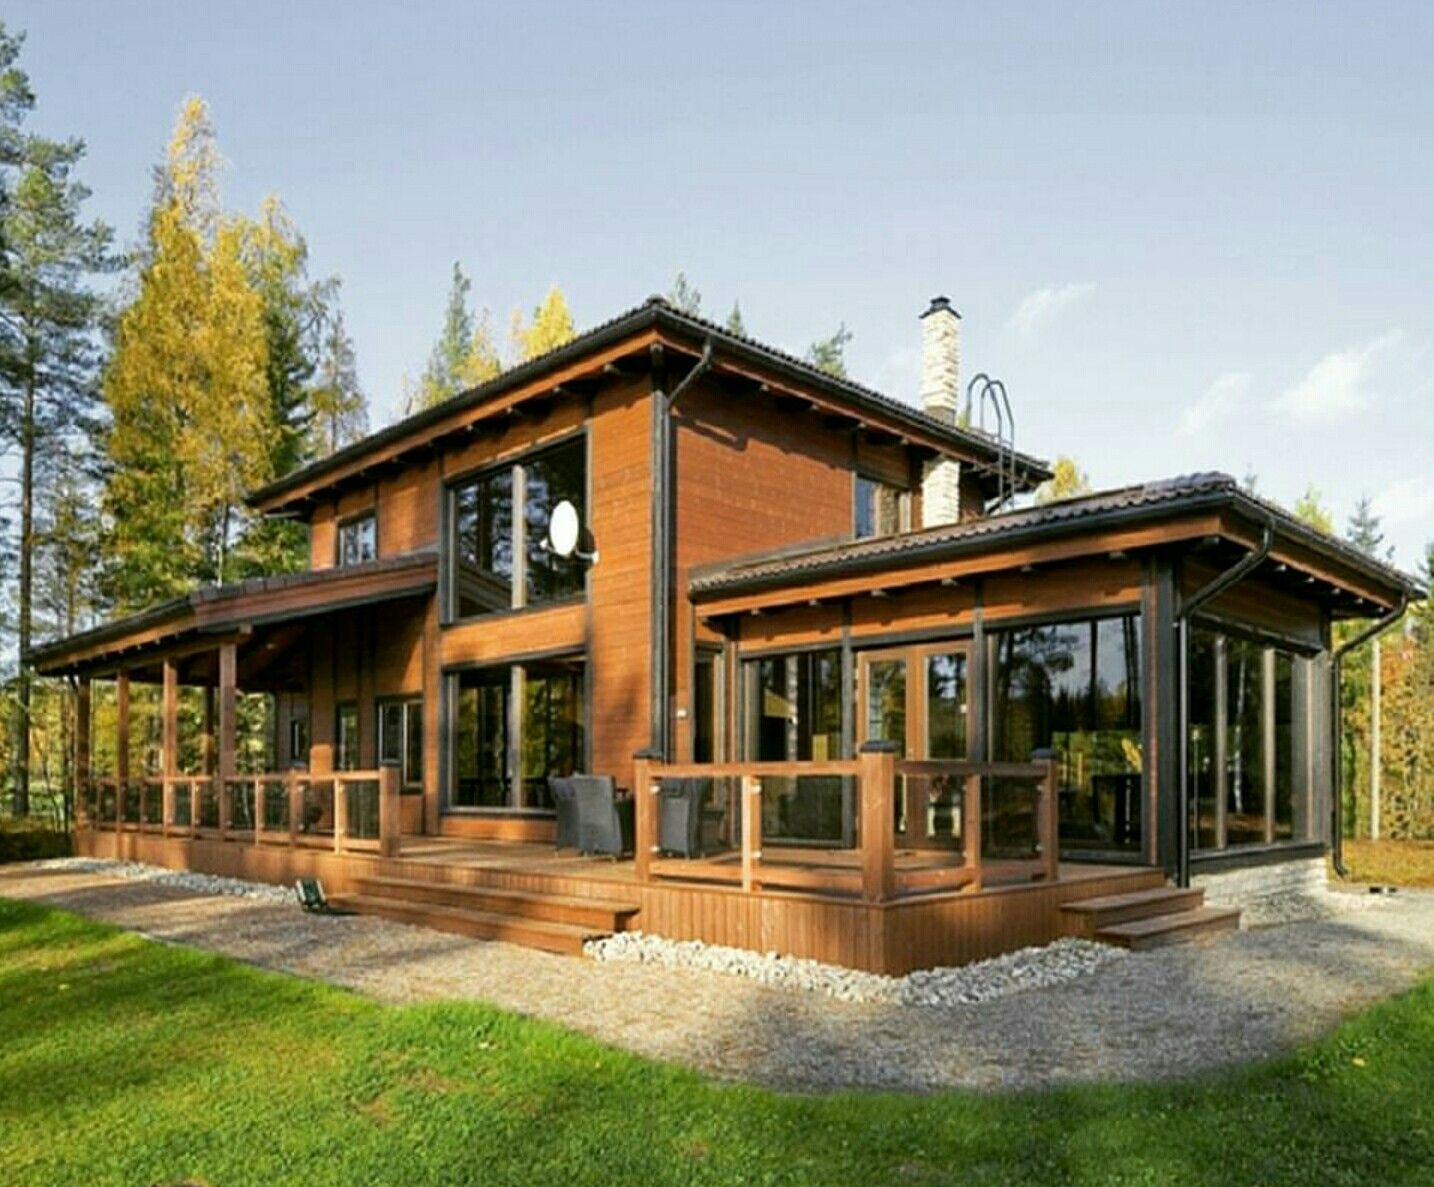 14 best Houses images on Pinterest   Finland, House design and ...